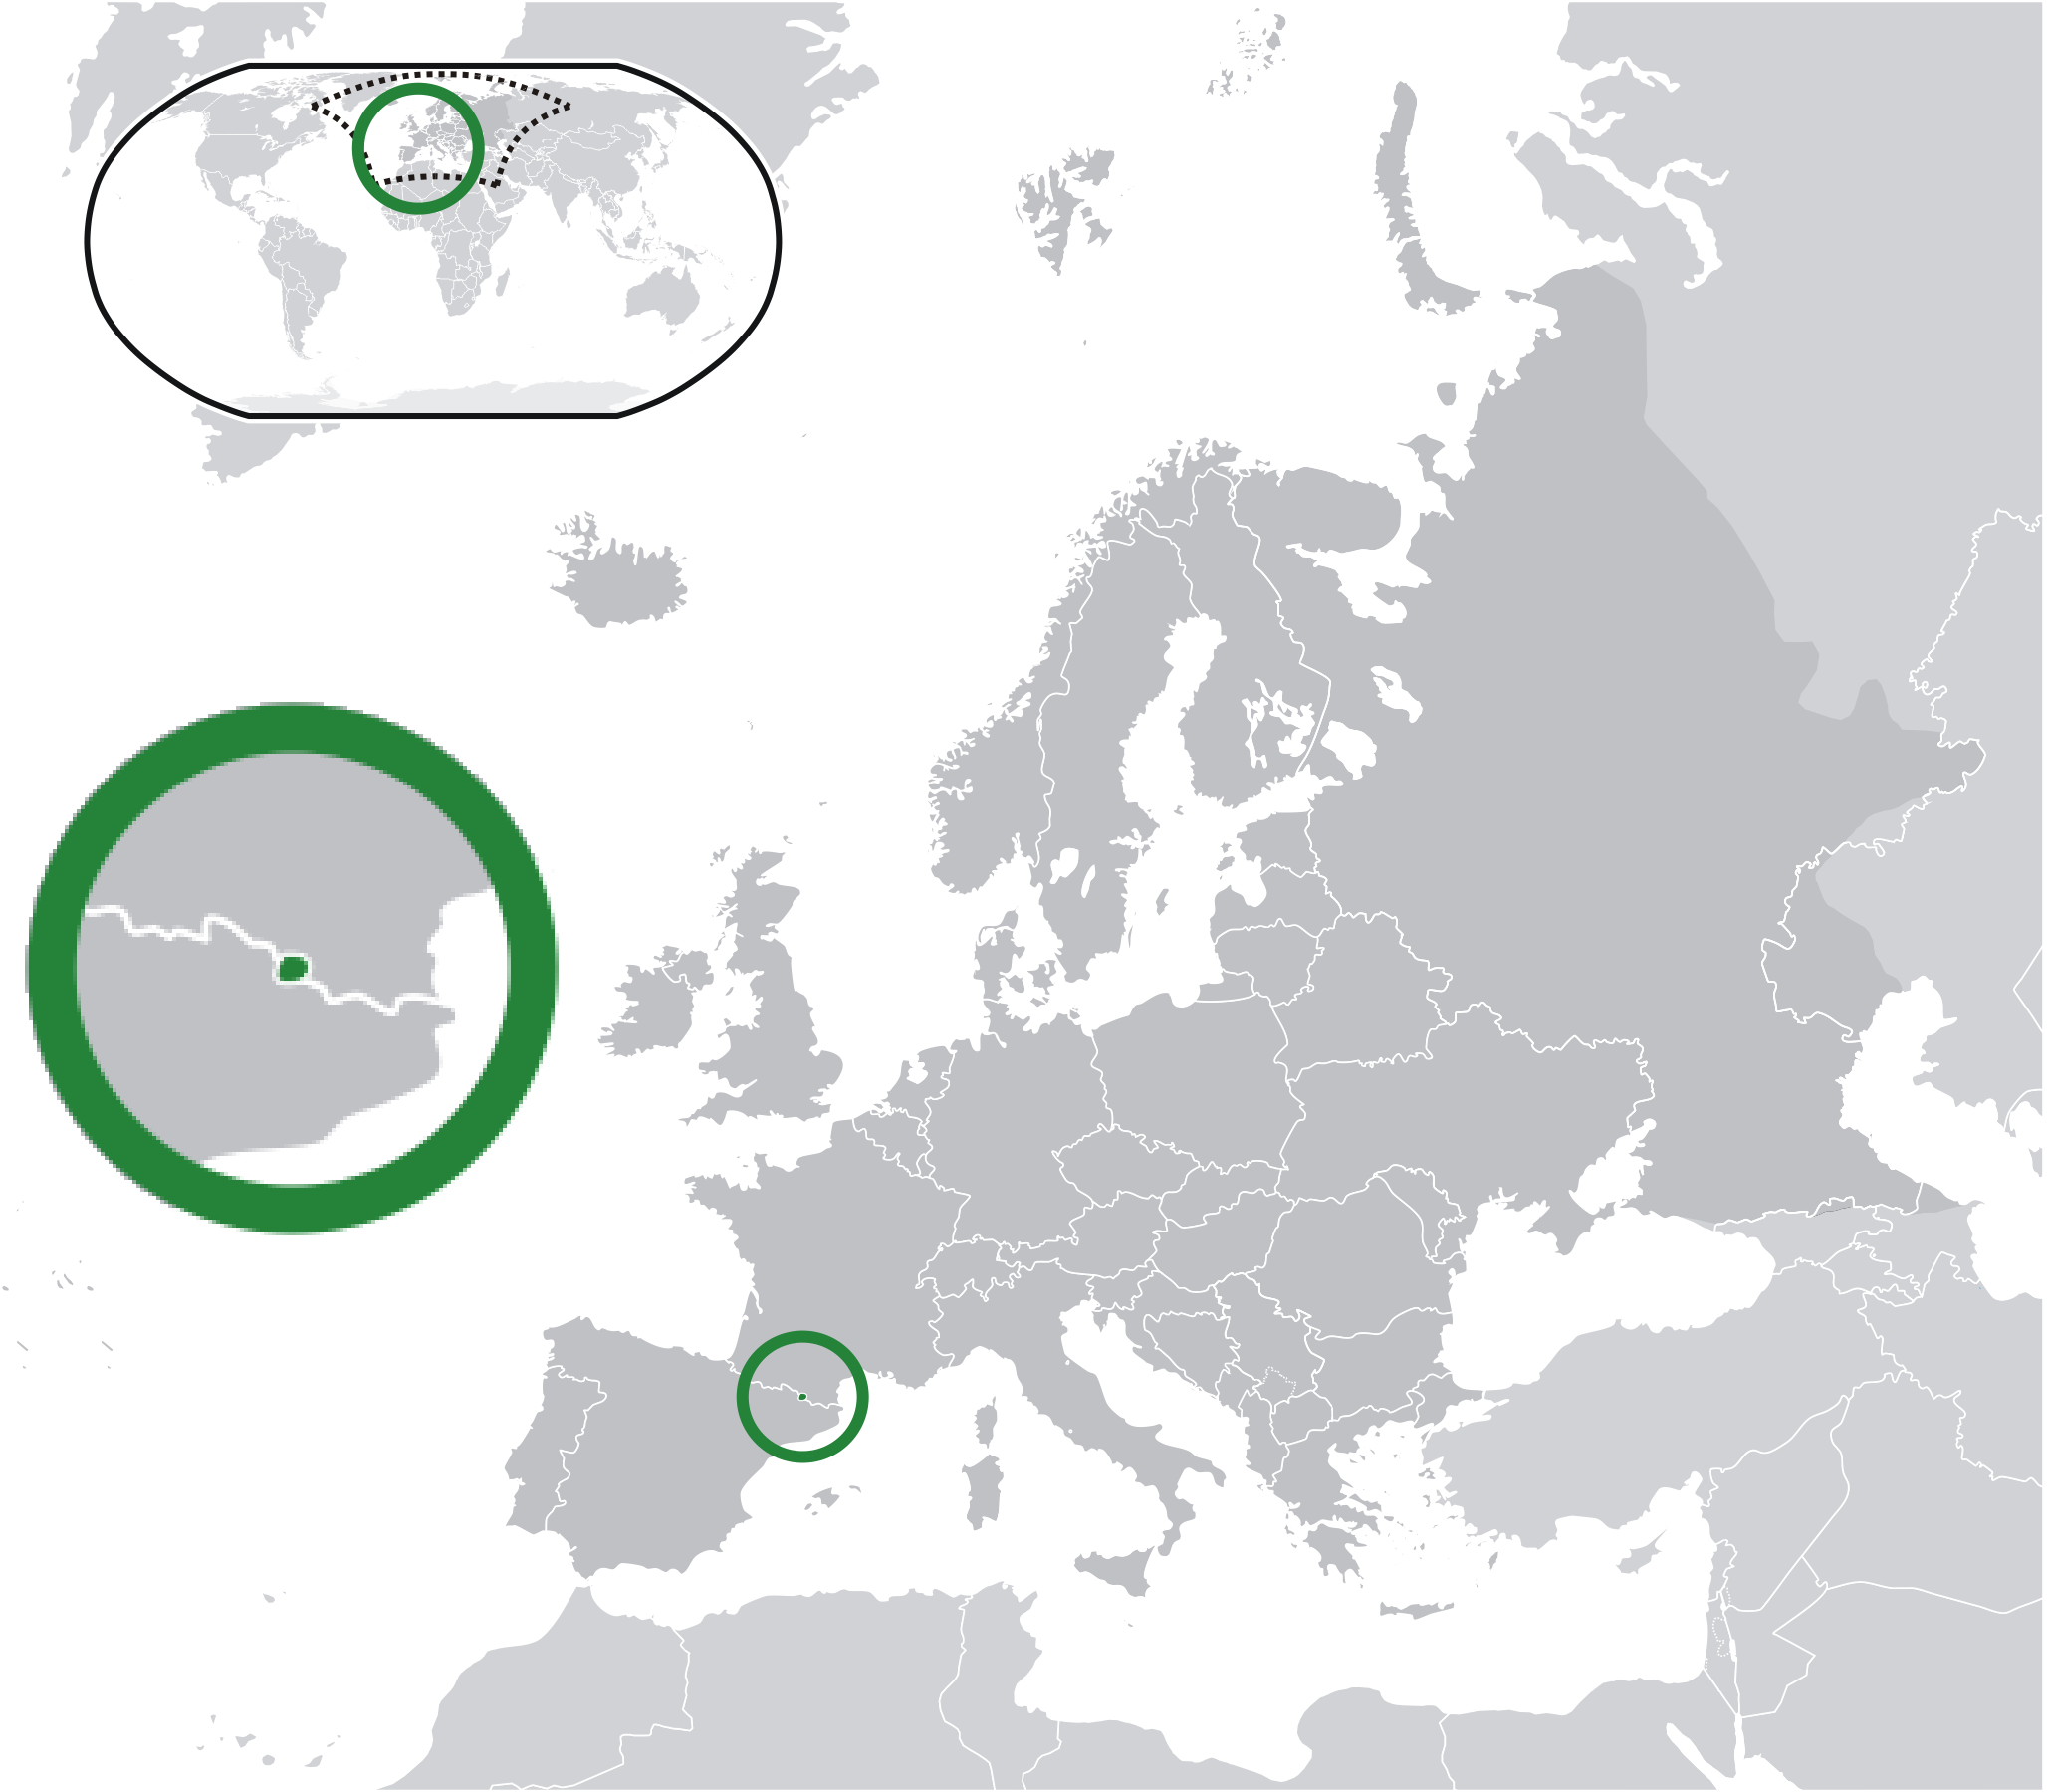 FileLocation Andorra Europepng Wikimedia Commons